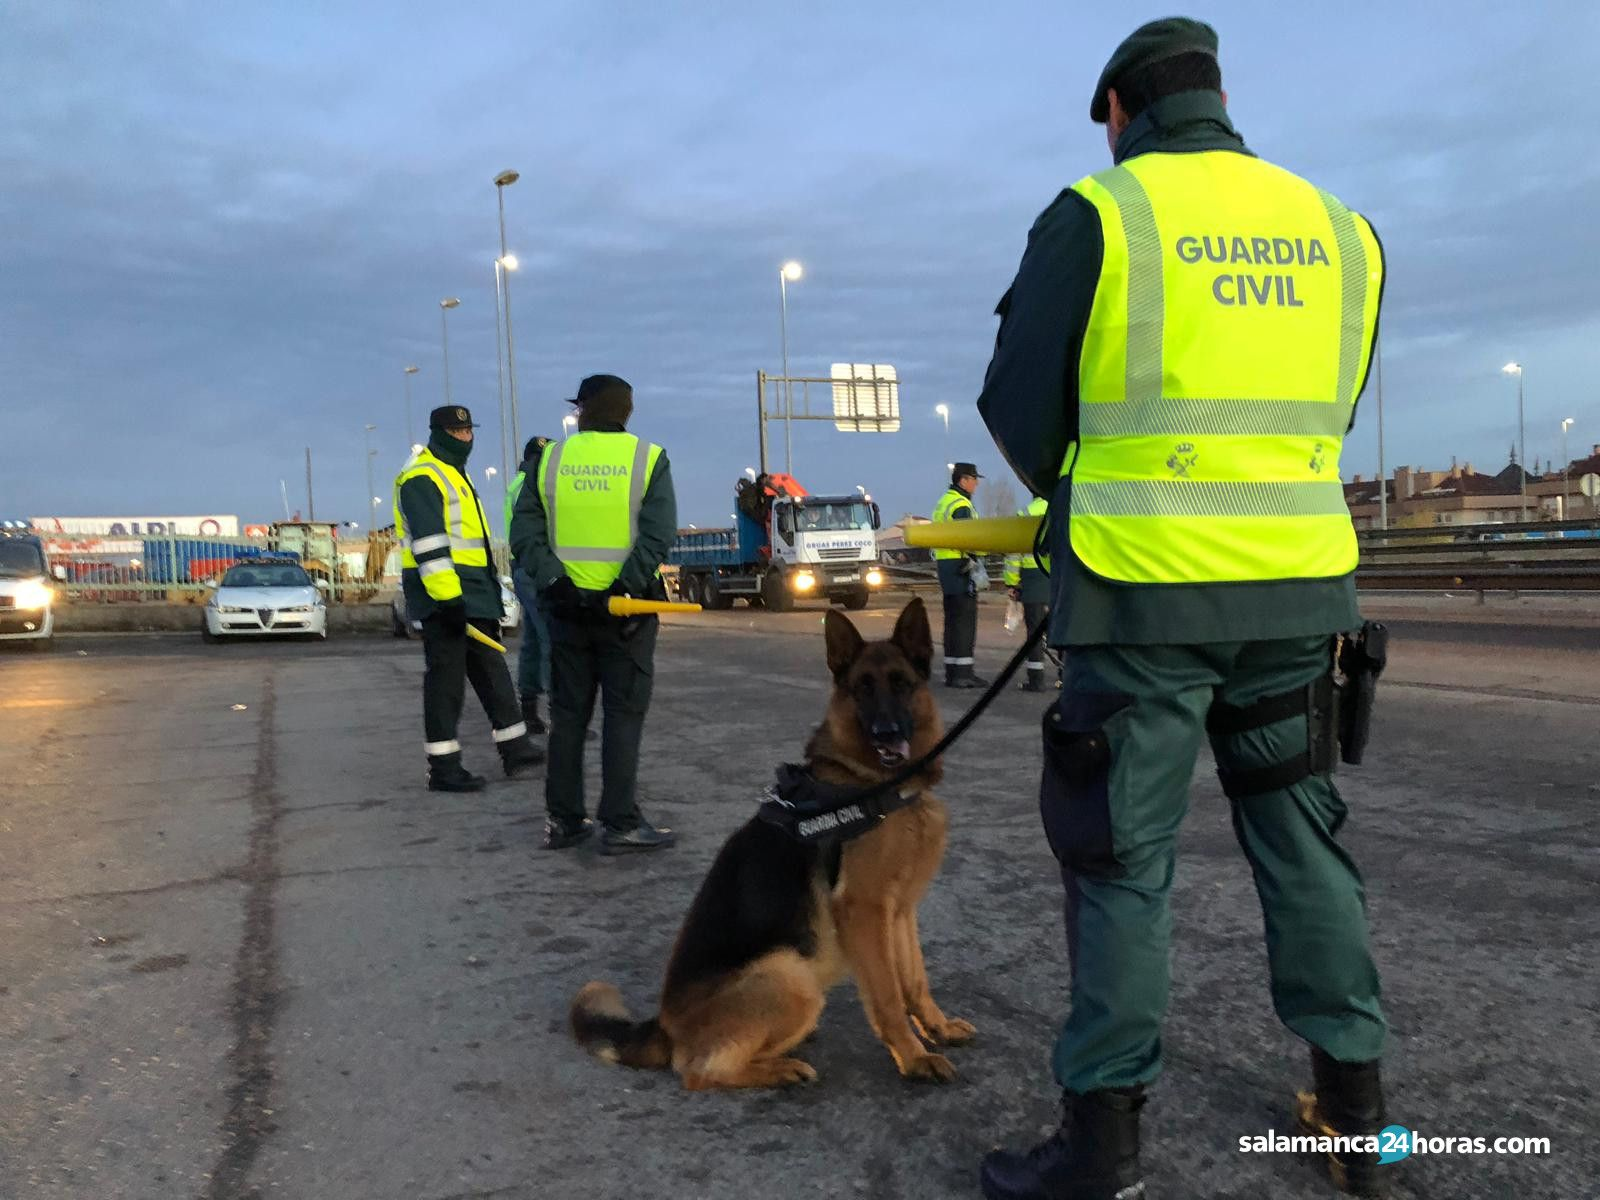 Controles de la Guardia Civil en el Fin de Año Universitario